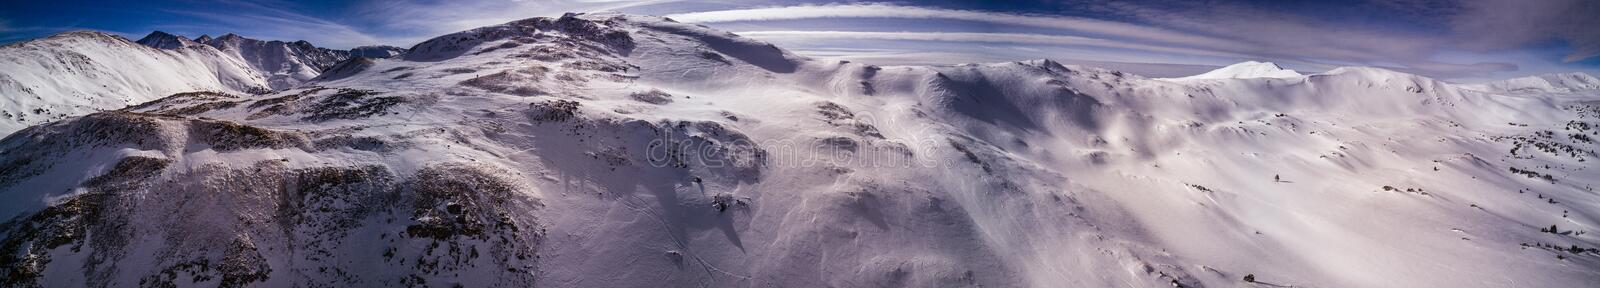 Aerial Drone Panorama Photo - Colorado Rocky Mountains after a fresh winter storm. Beautiful Drone photograph of the Colorado Rocky Mountains after a fresh dump stock photo